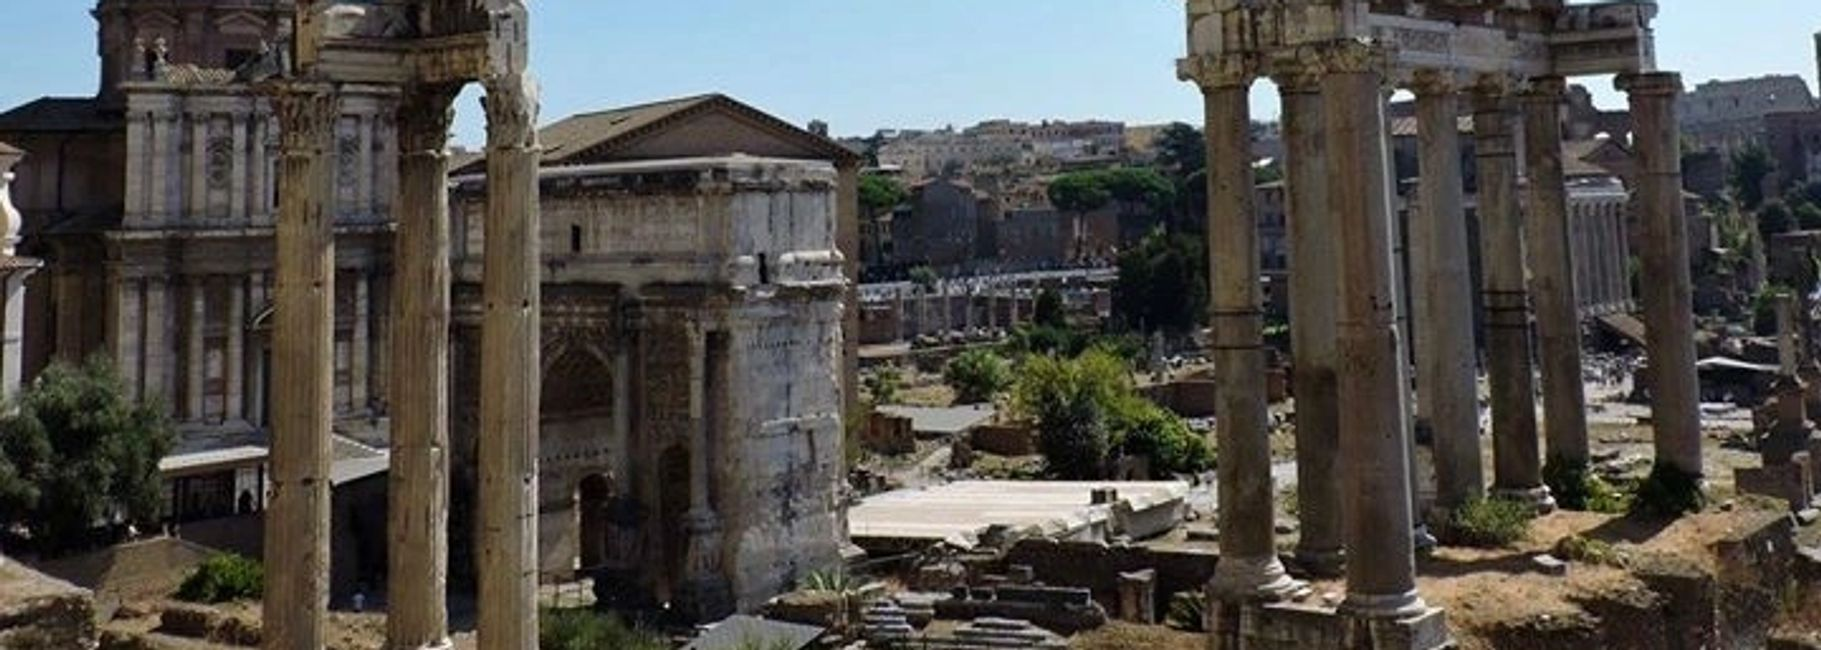 Roman Forum, Photo credit: Sabrina Pangione